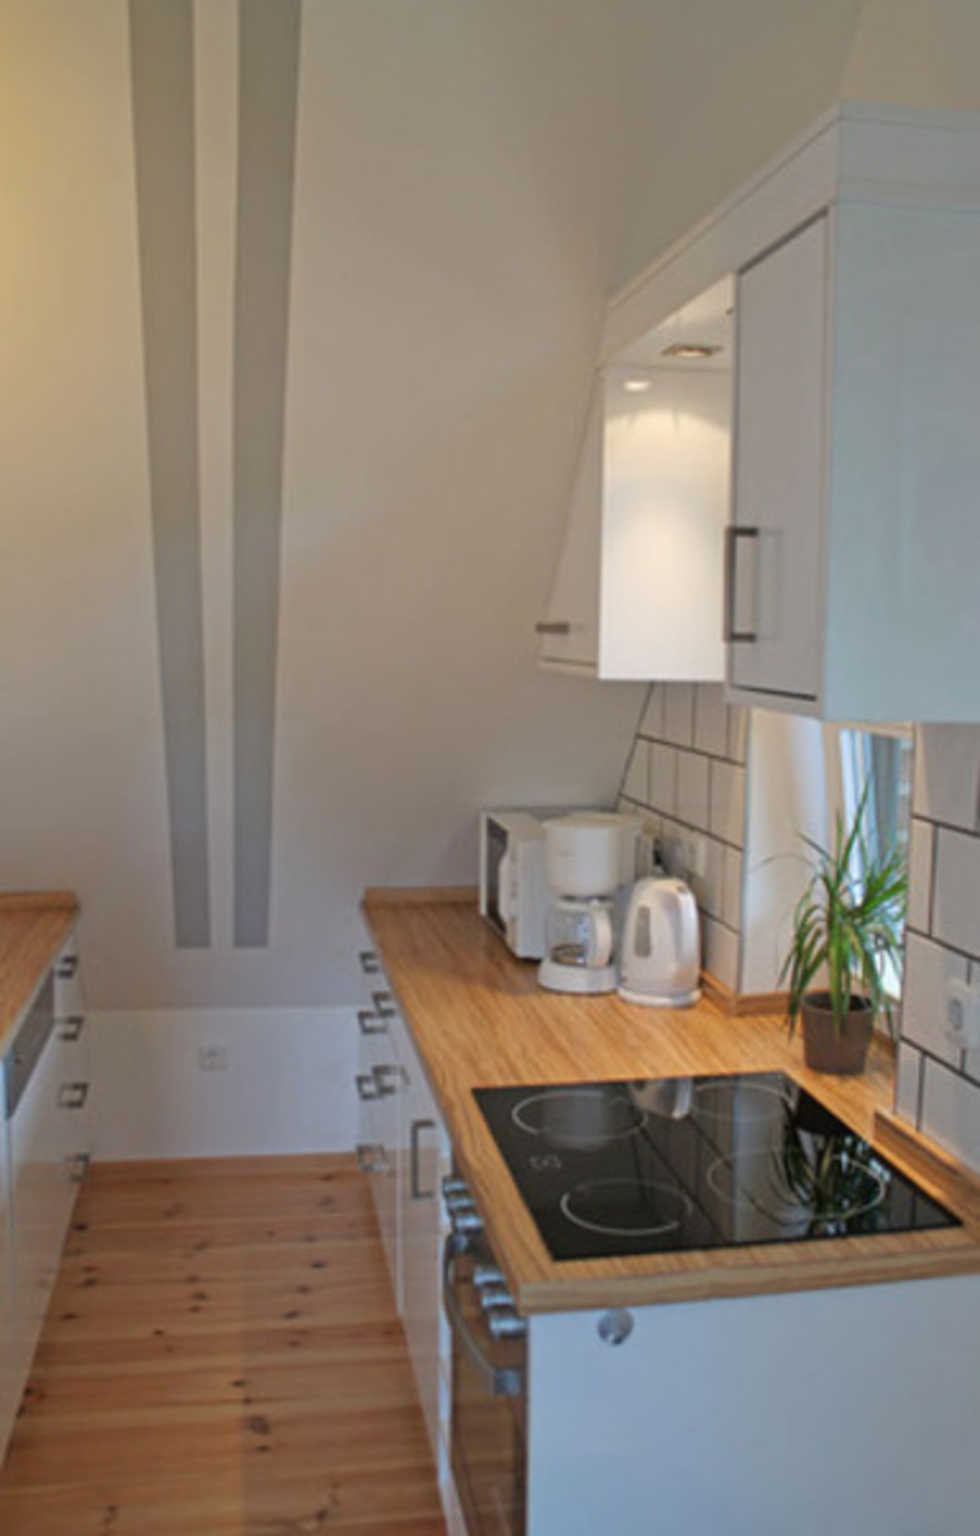 Appartement 'Gänsebrink' F 748, 1 - Raum - Apparte